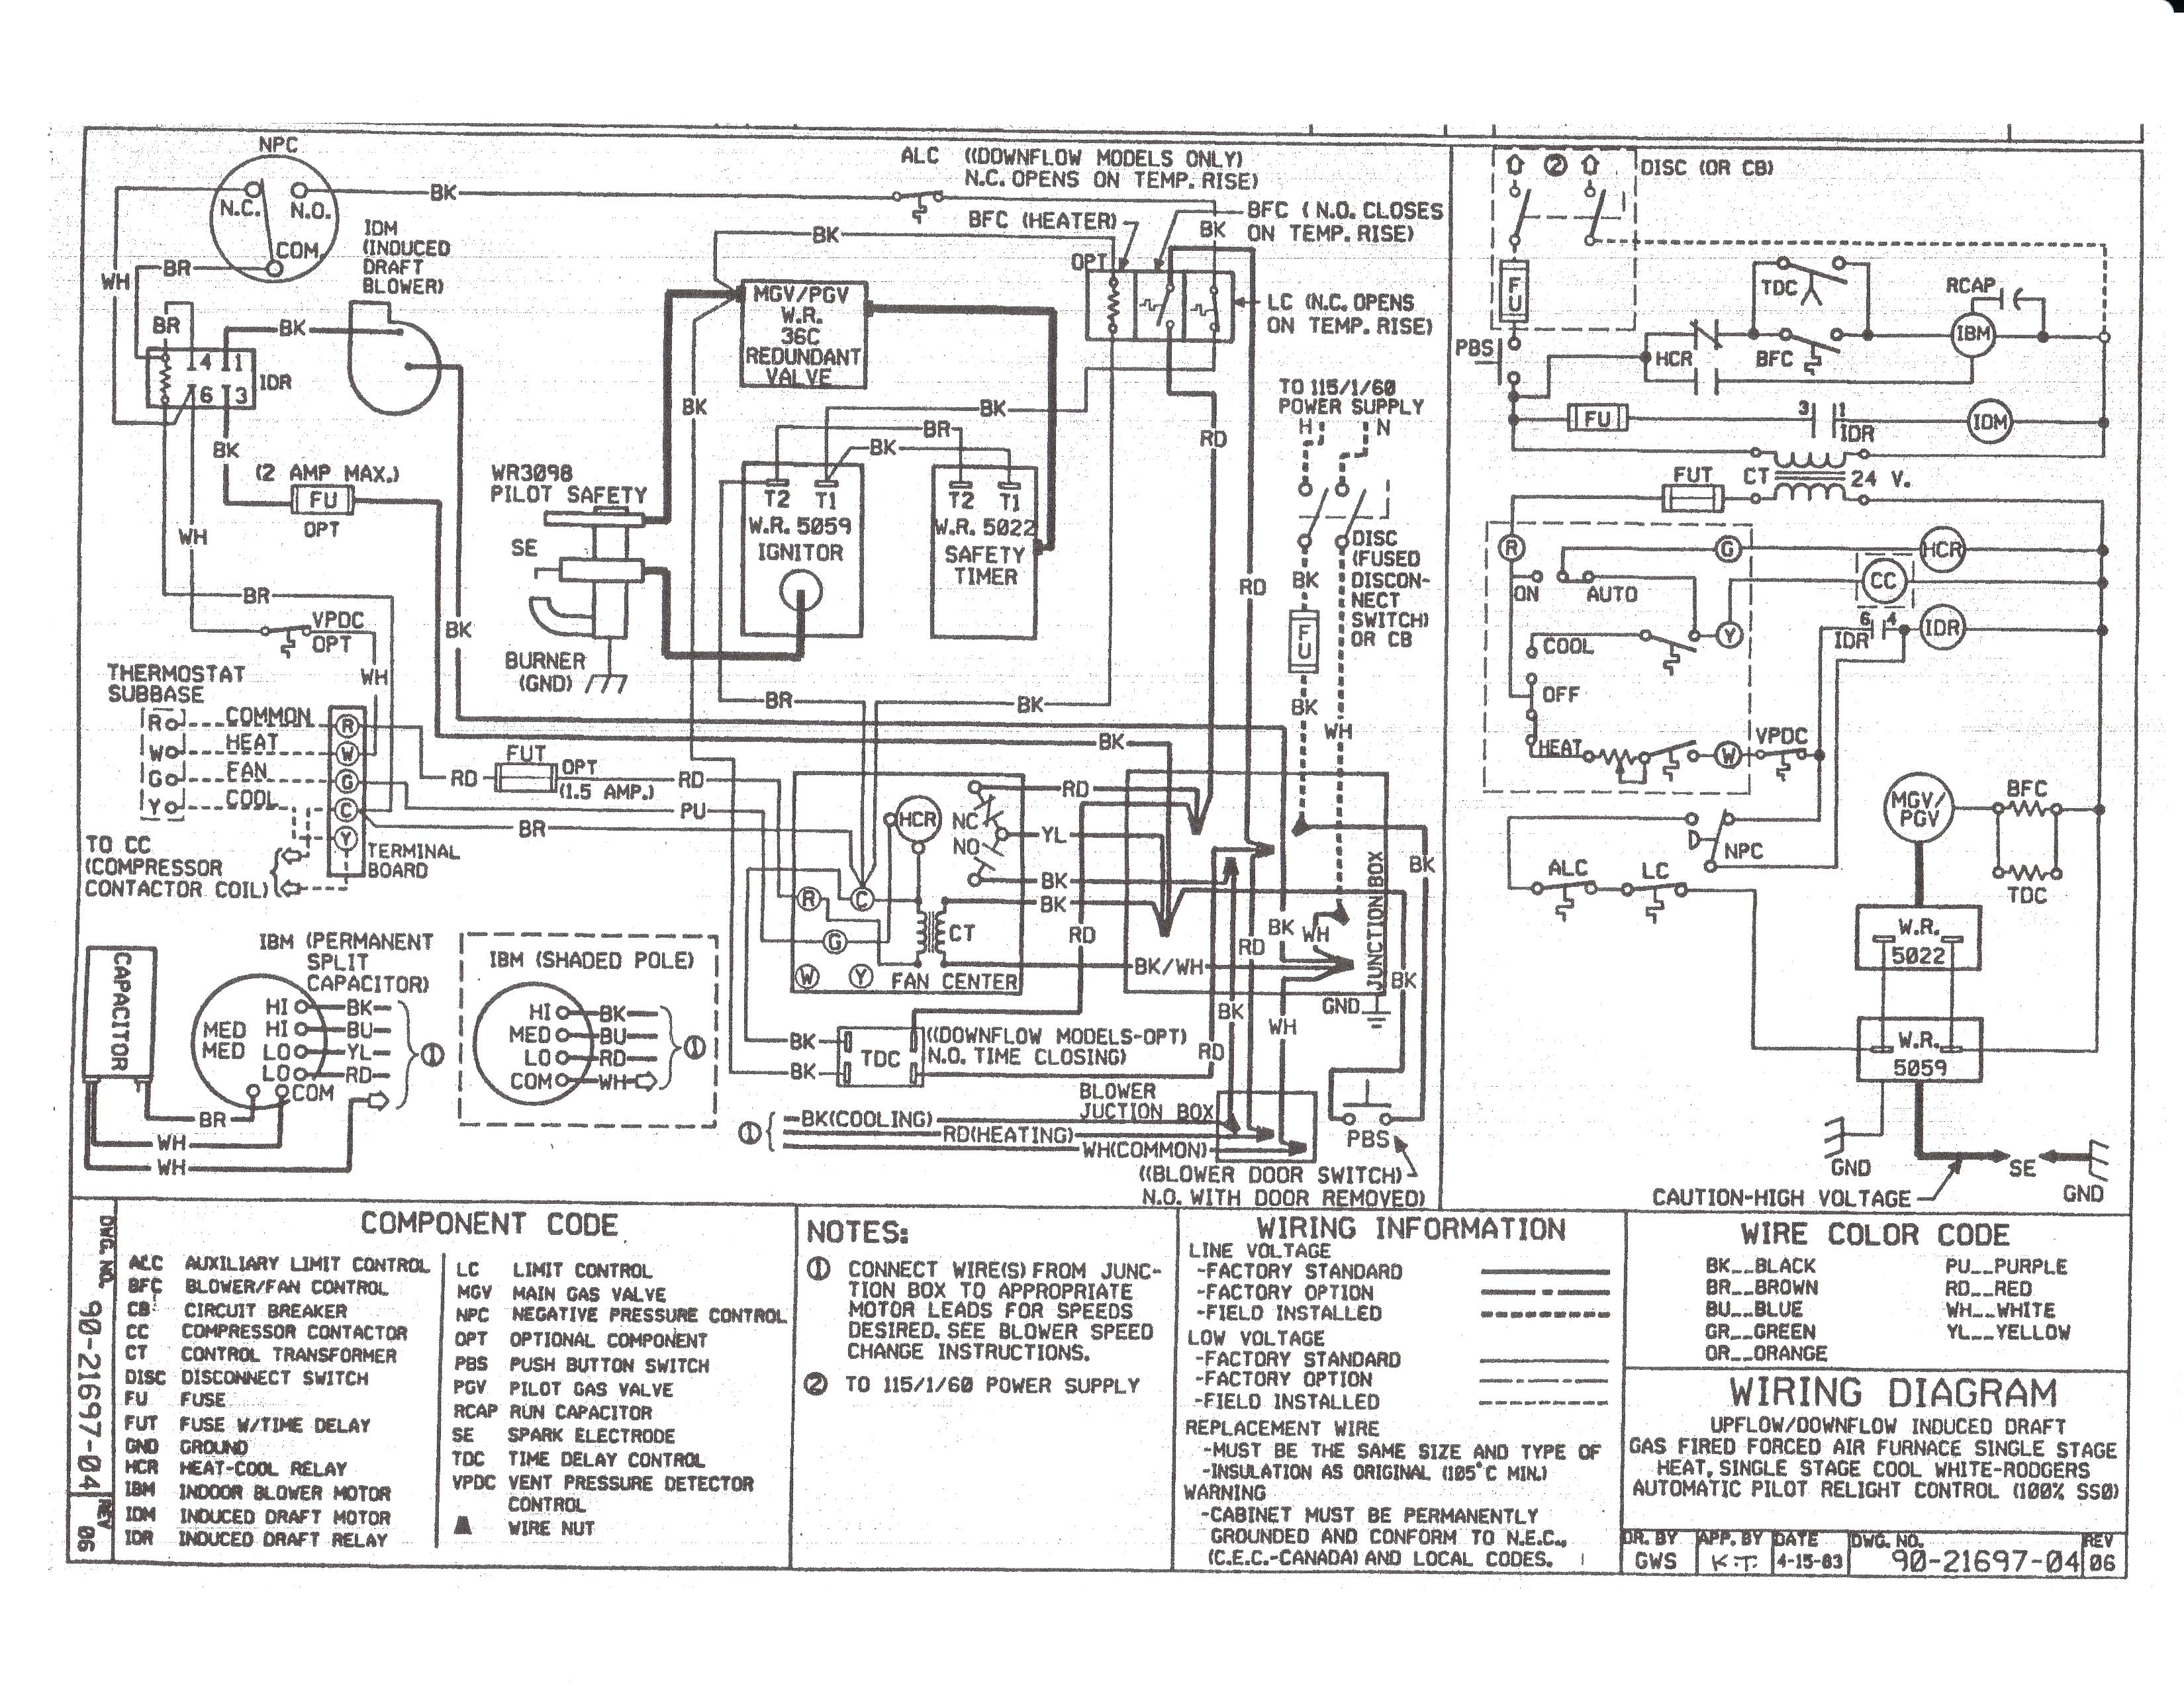 Lennox Furnace Thermostat Wiring Diagram New With Honeywell Fortable - Nest Wiring Diagram Orange